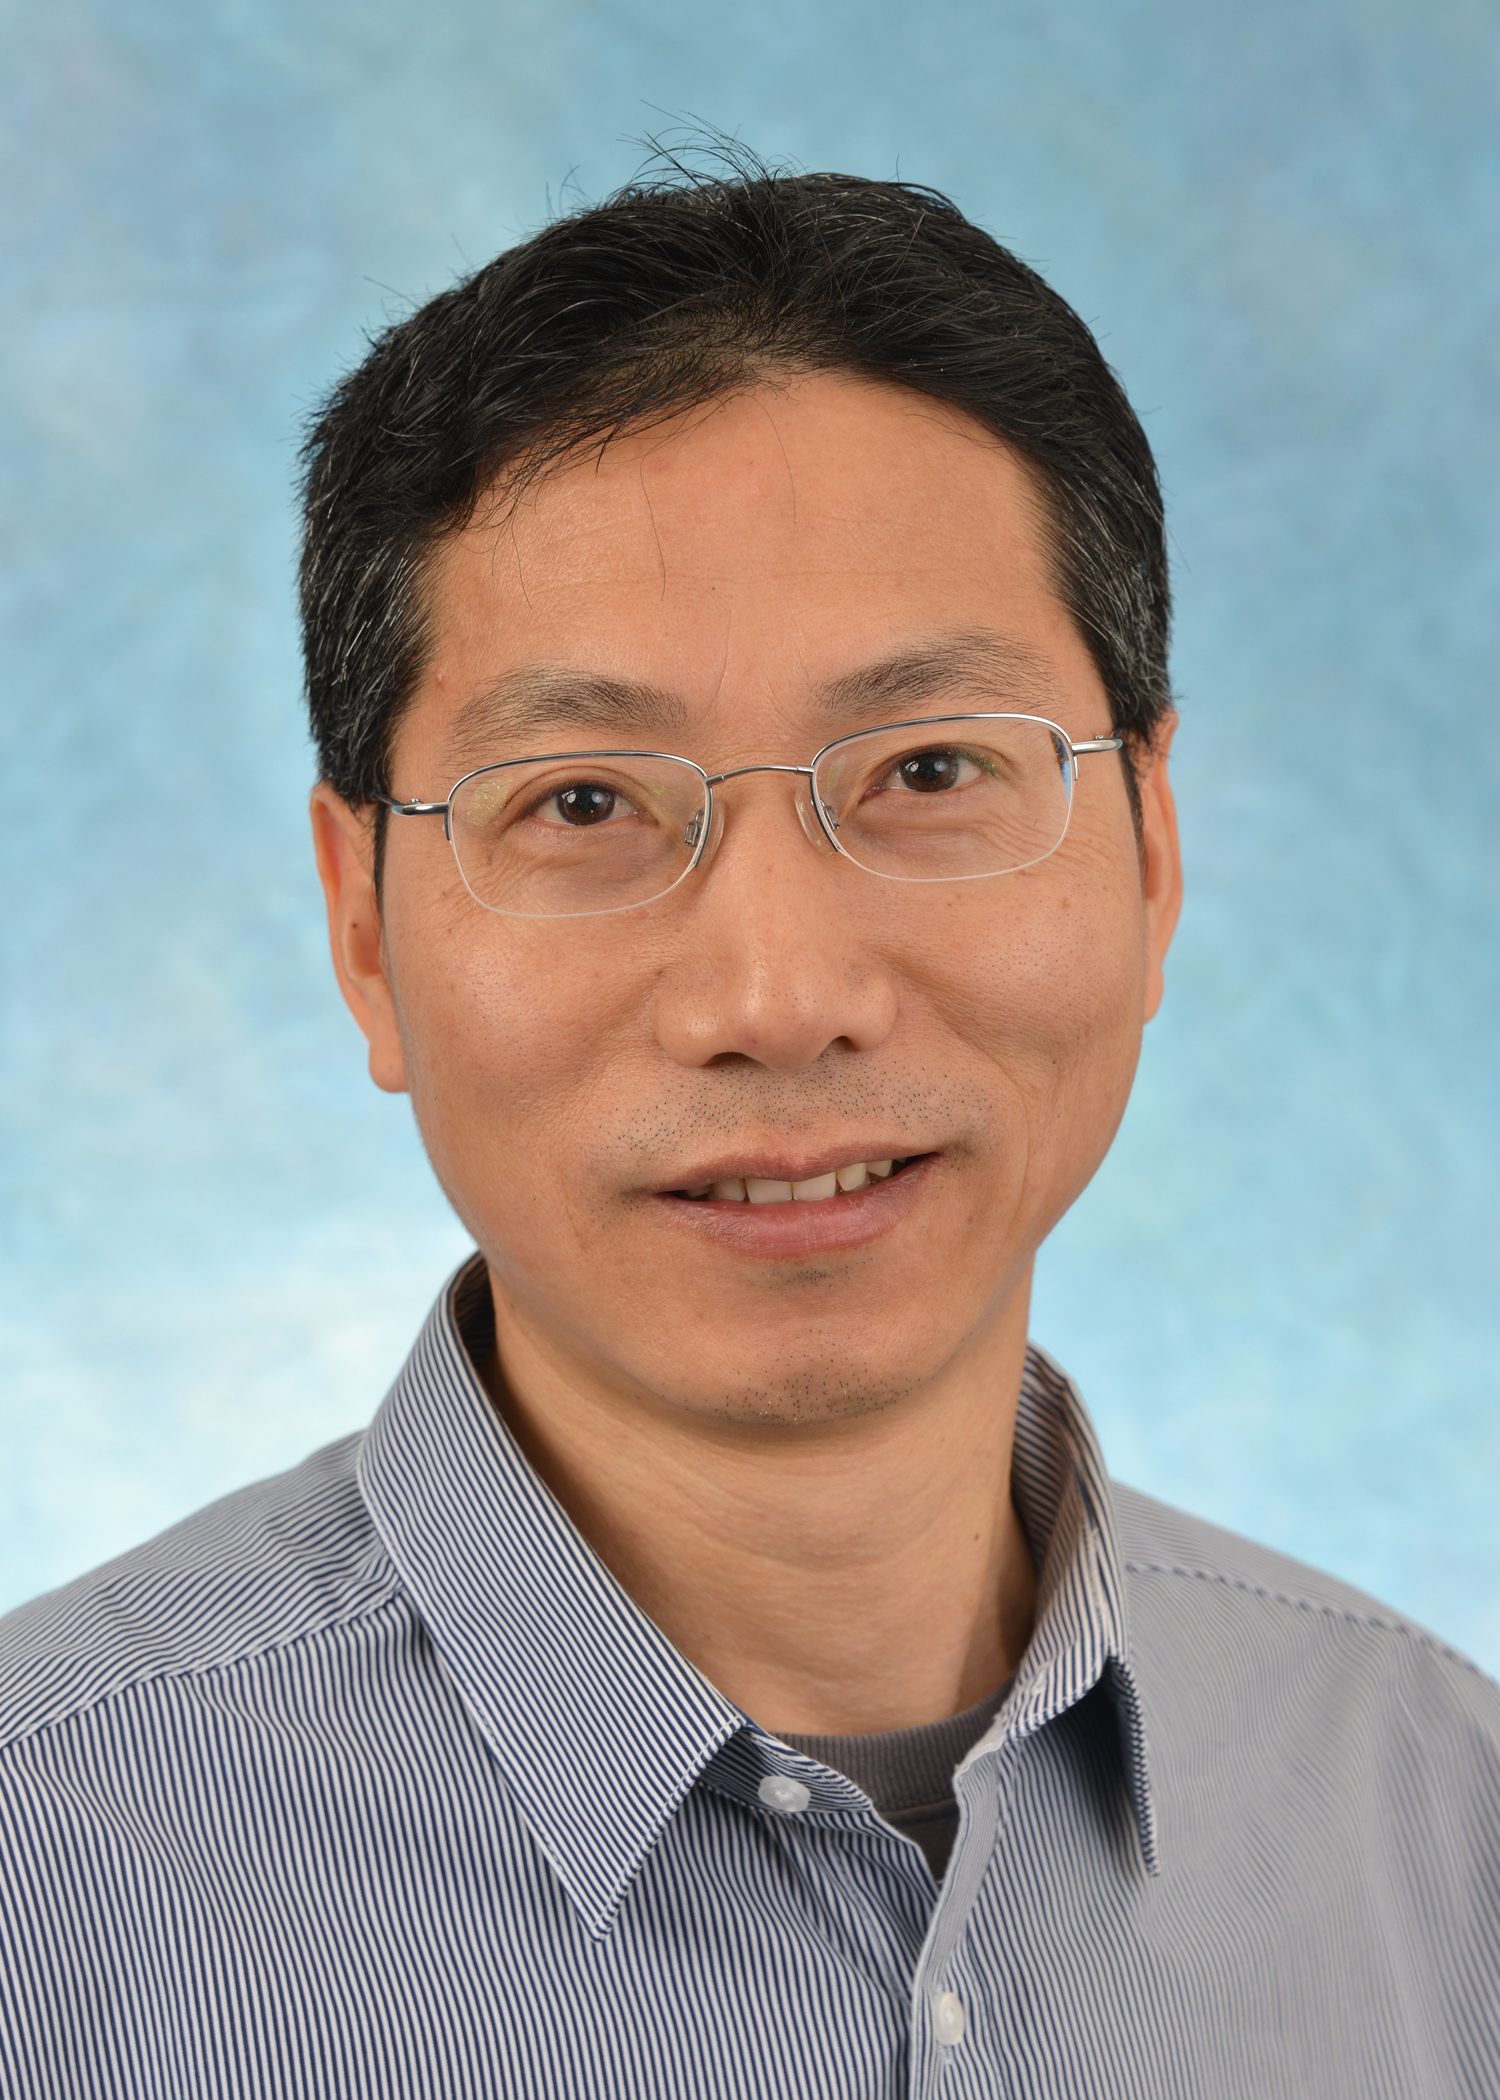 photo of Guochun Jiang PhD, Assistant Professor of Biochemistry and Biophysics Joint appointment in UNC HIV Cure Center (photo credit: Paul Braly of Tarheel Images)